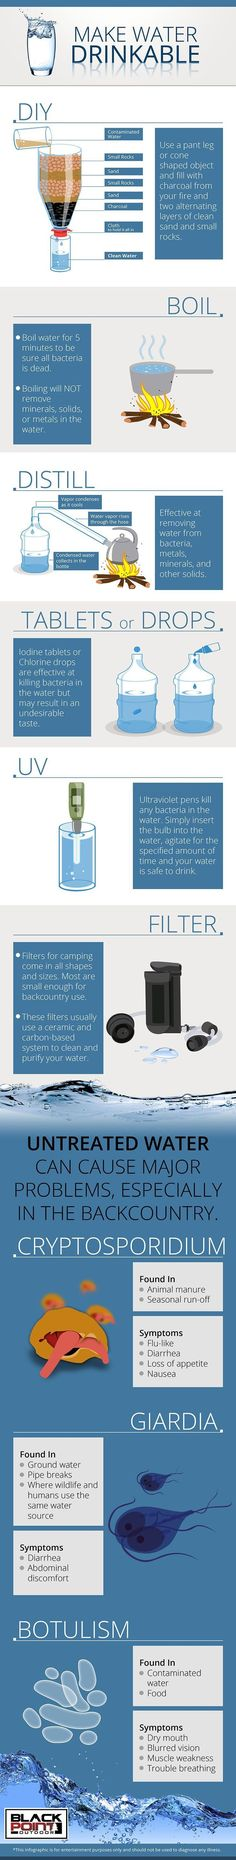 make water drinkable infographic - Tap The Link Now To Find Gadgets for Survival and Outdoor Camping